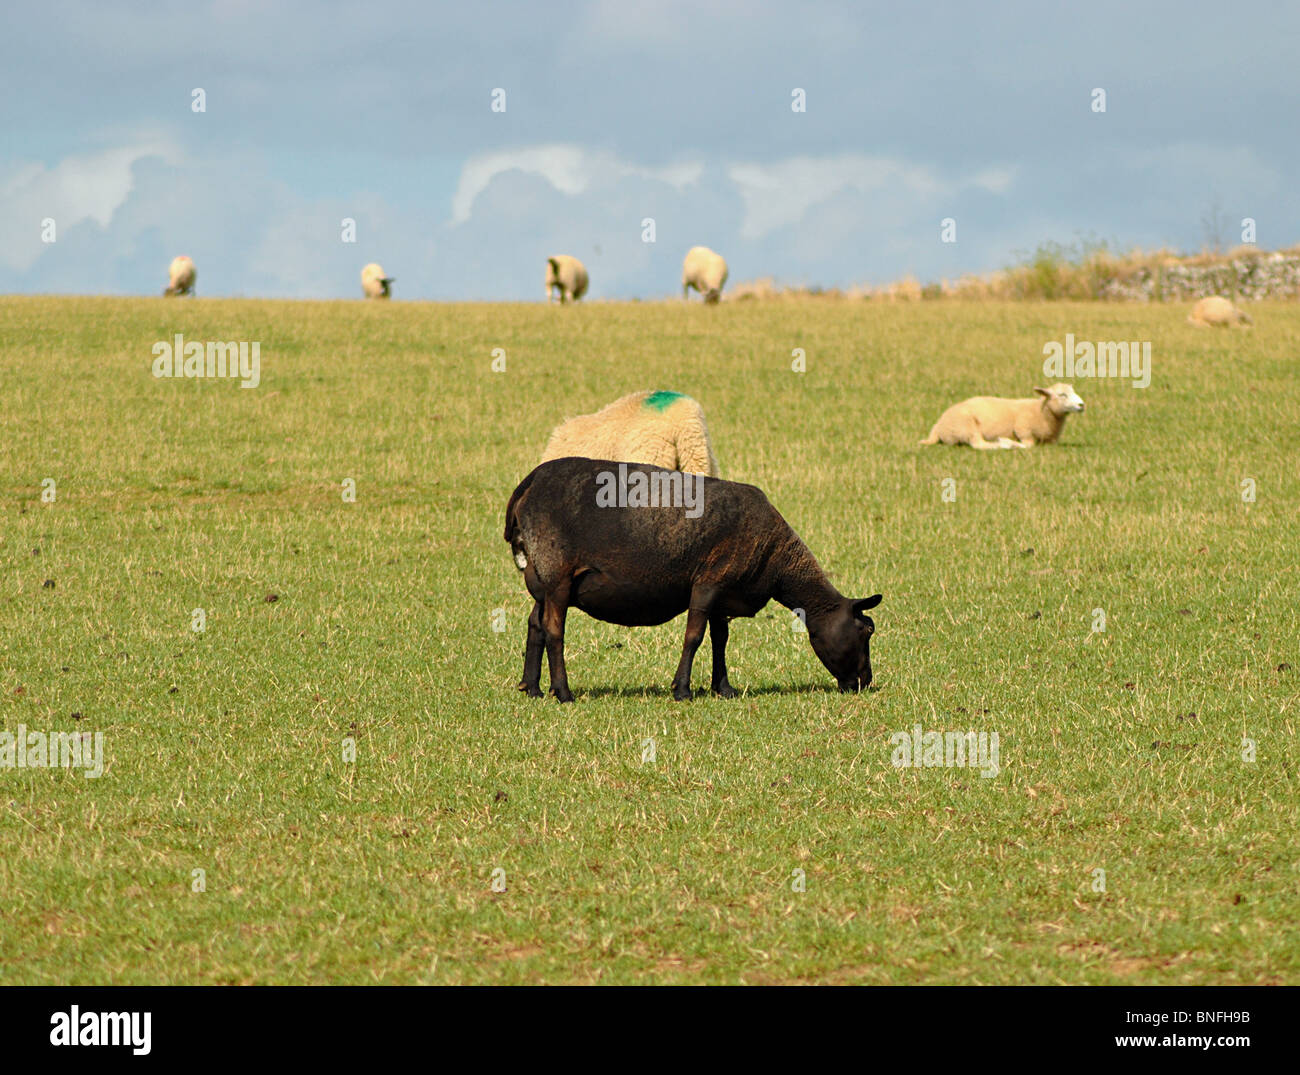 Single black sheep in field of white ones, Cornwall, England - Stock Image